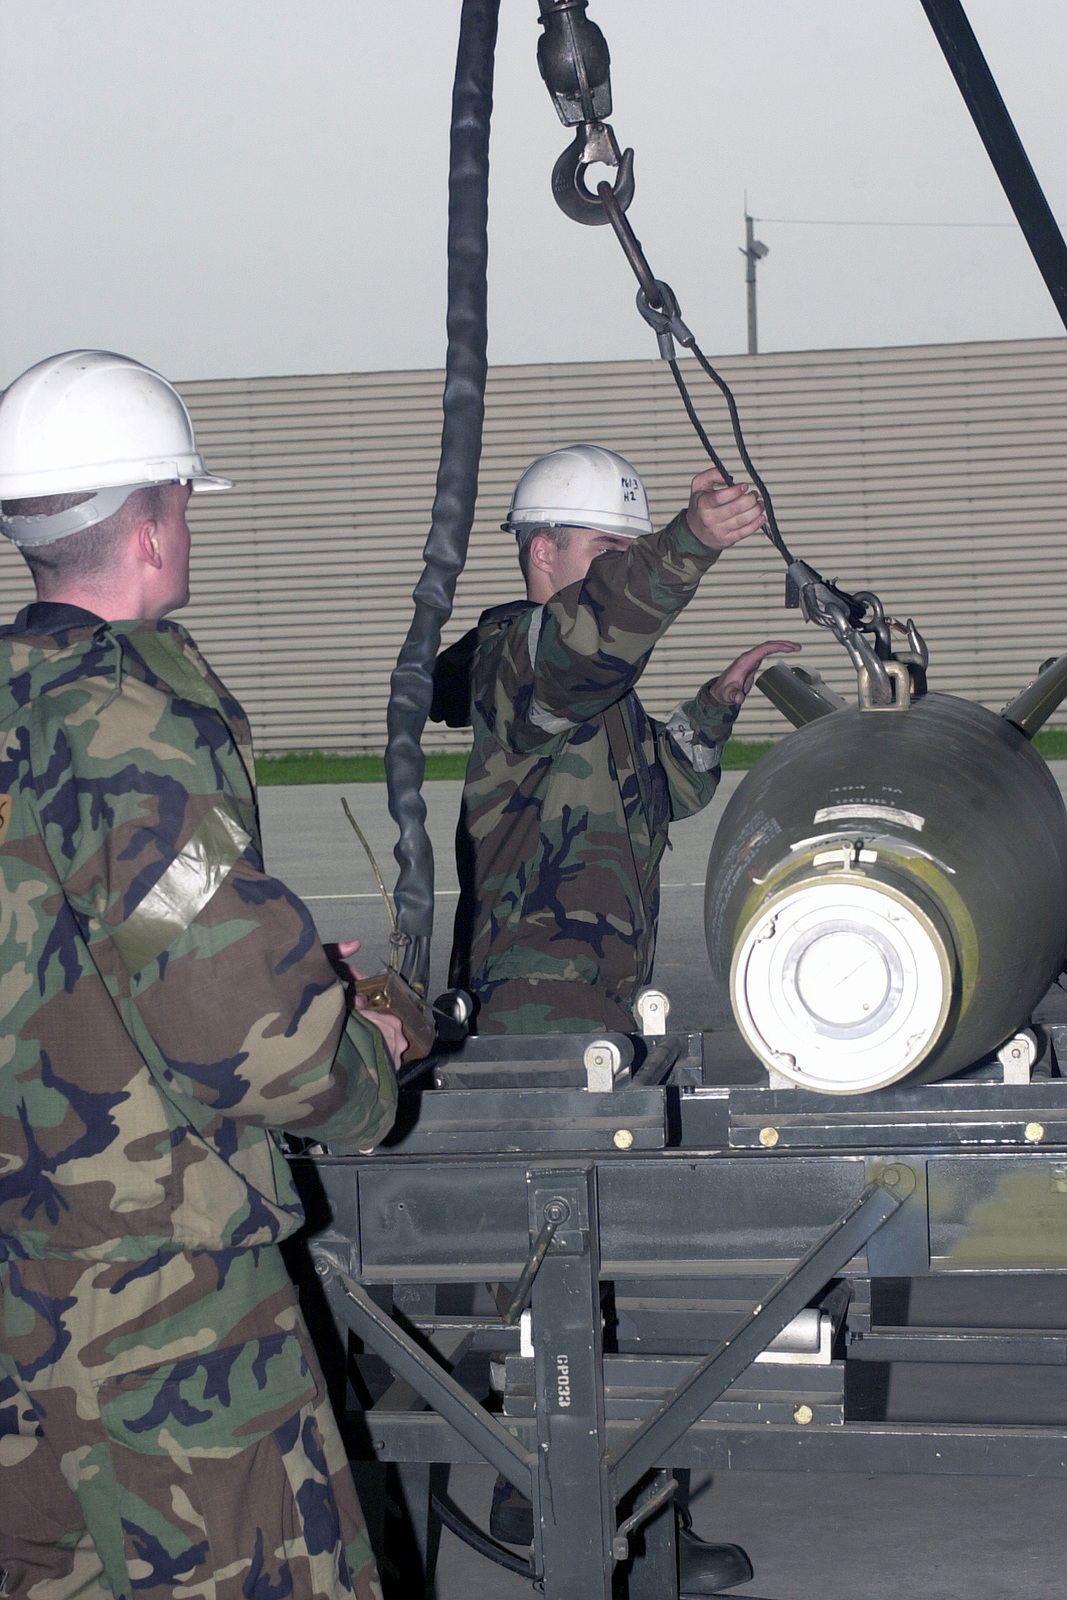 SENIOR AIRMAN (SRA) Joshua Maines and SRA John Strength refrag a trailer with GBU12 laser guided bombs during the Initial Response Readiness Exercise/Combat Employment Readiness (IRRE/CERE) exercise at Osan Air Base, Republic of Korea. The quarterly exercise tests the 51st Fighter Wing's ability to respond to combat situations